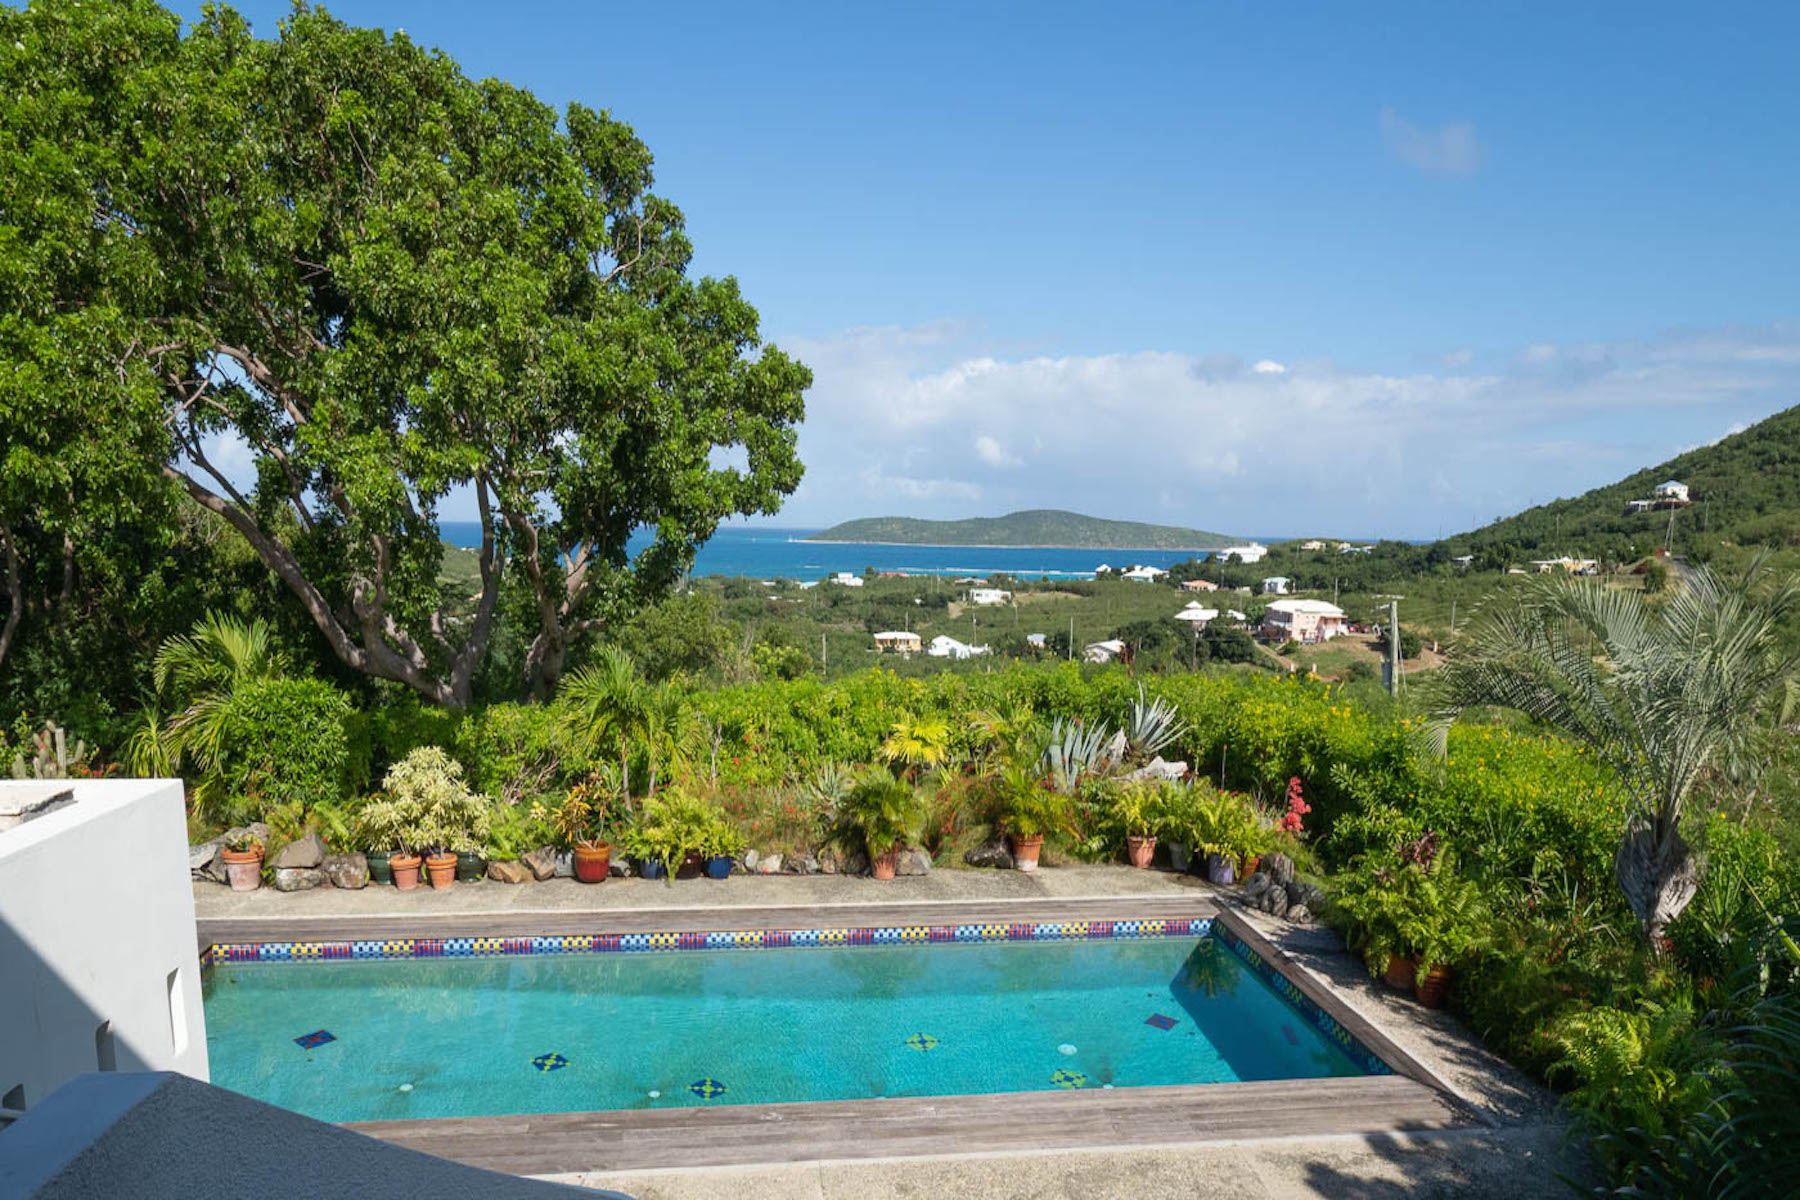 Multi-Family Home for Sale at 16, 18 Yellow Cliff 16,18 Yellow Cliff St Croix, Virgin Islands 00820 United States Virgin Islands